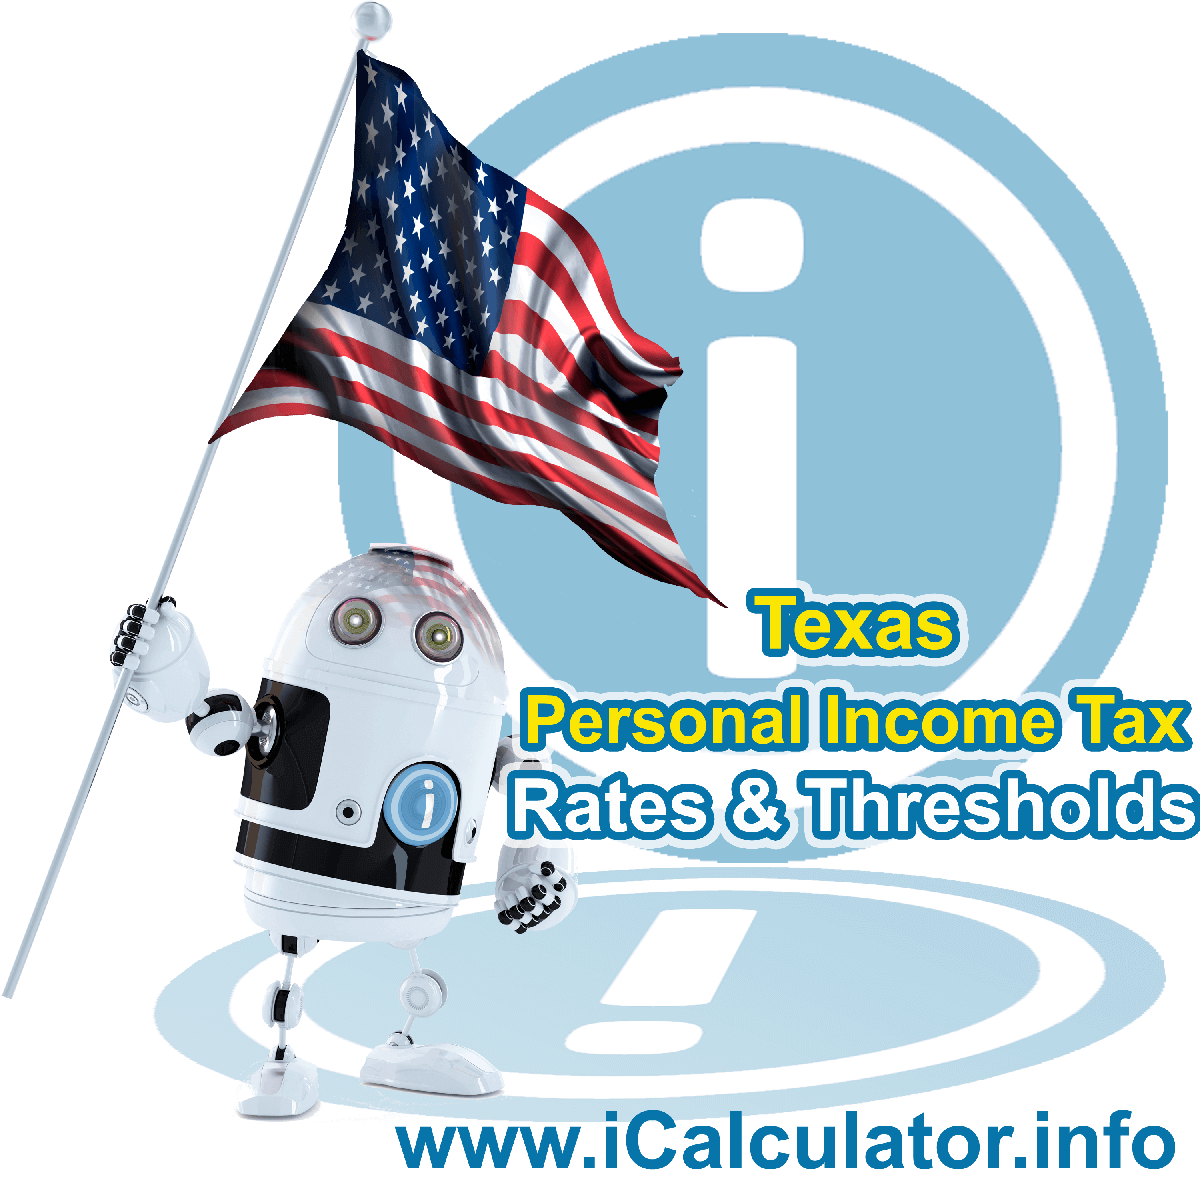 Texas State Tax Tables 2016. This image displays details of the Texas State Tax Tables for the 2016 tax return year which is provided in support of the 2016 US Tax Calculator